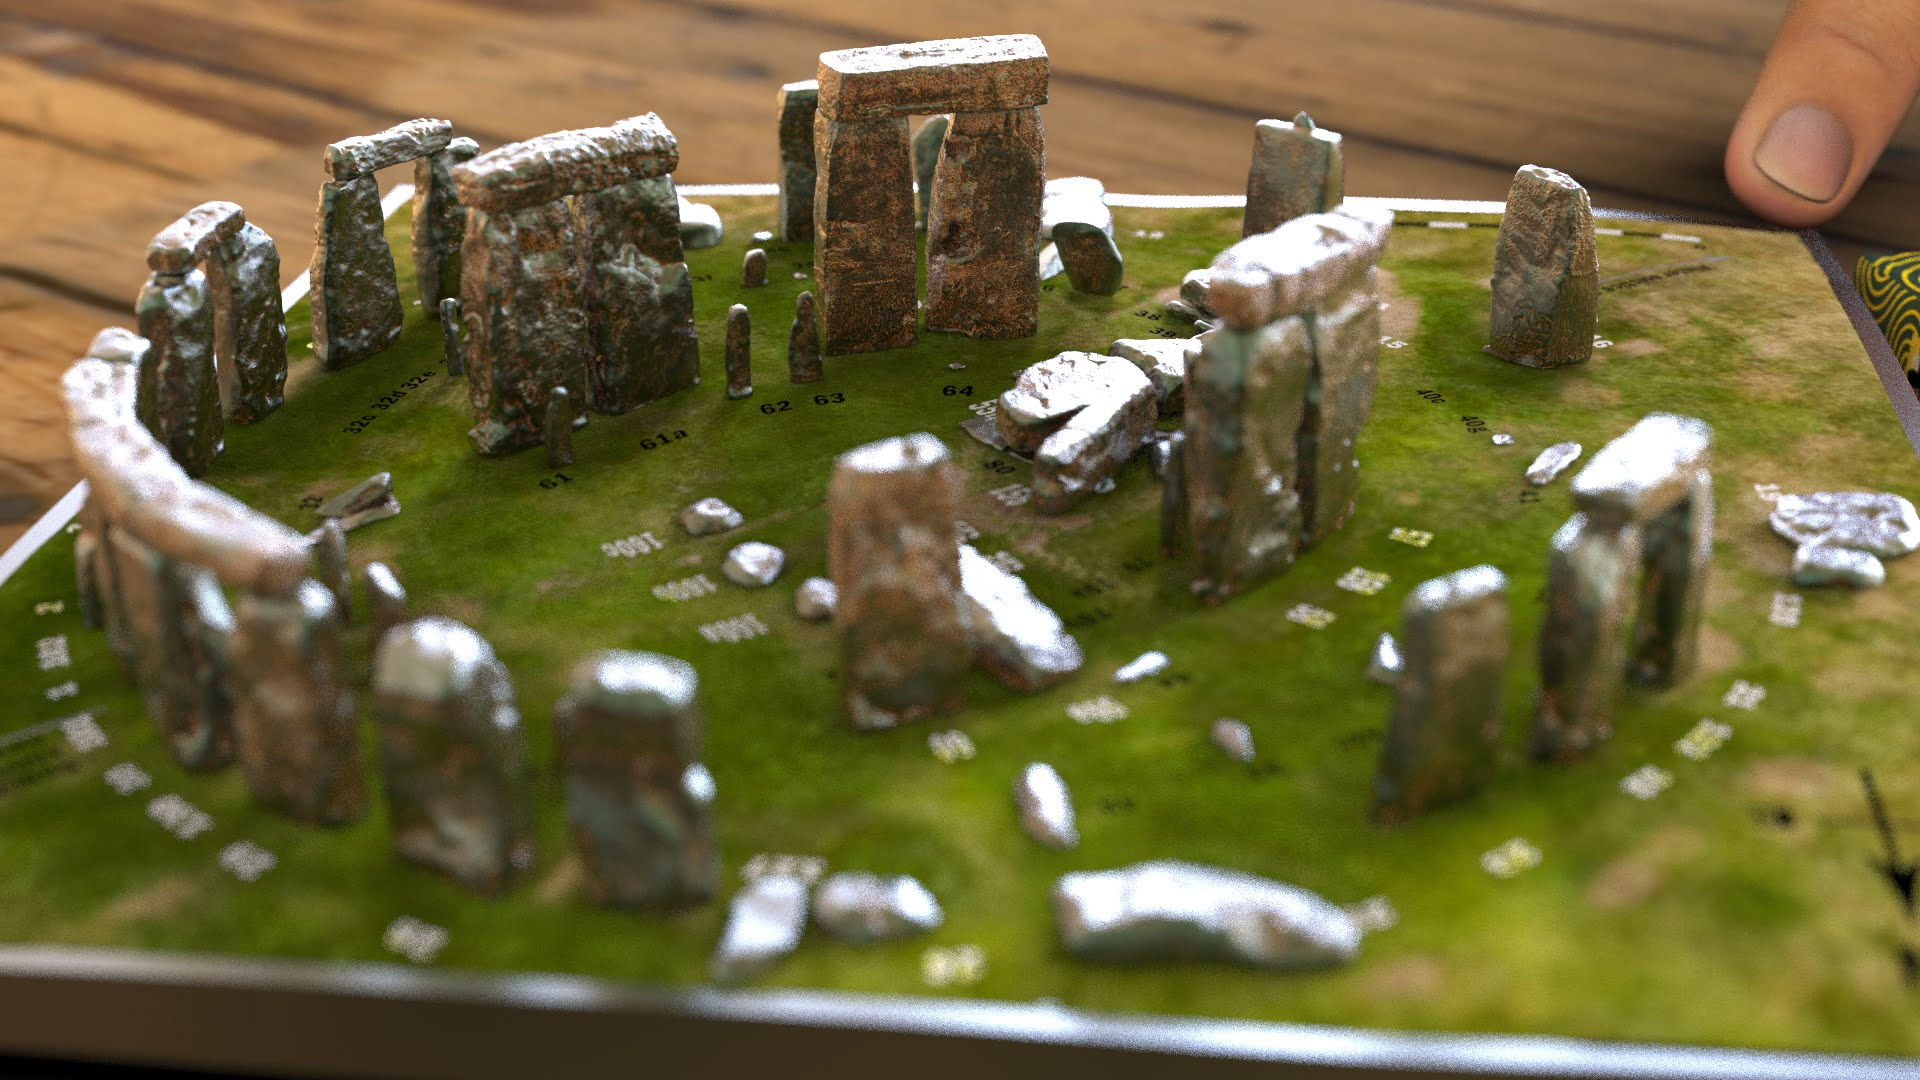 Buy Stonehenge Models: Light rust patina on cold cast Stonehenge model replica 195 x 195 mm or 7.7 x 7.7 inches square base with grass decal with or without numbered stones on ground map 002  - 200th scale pick n mix -